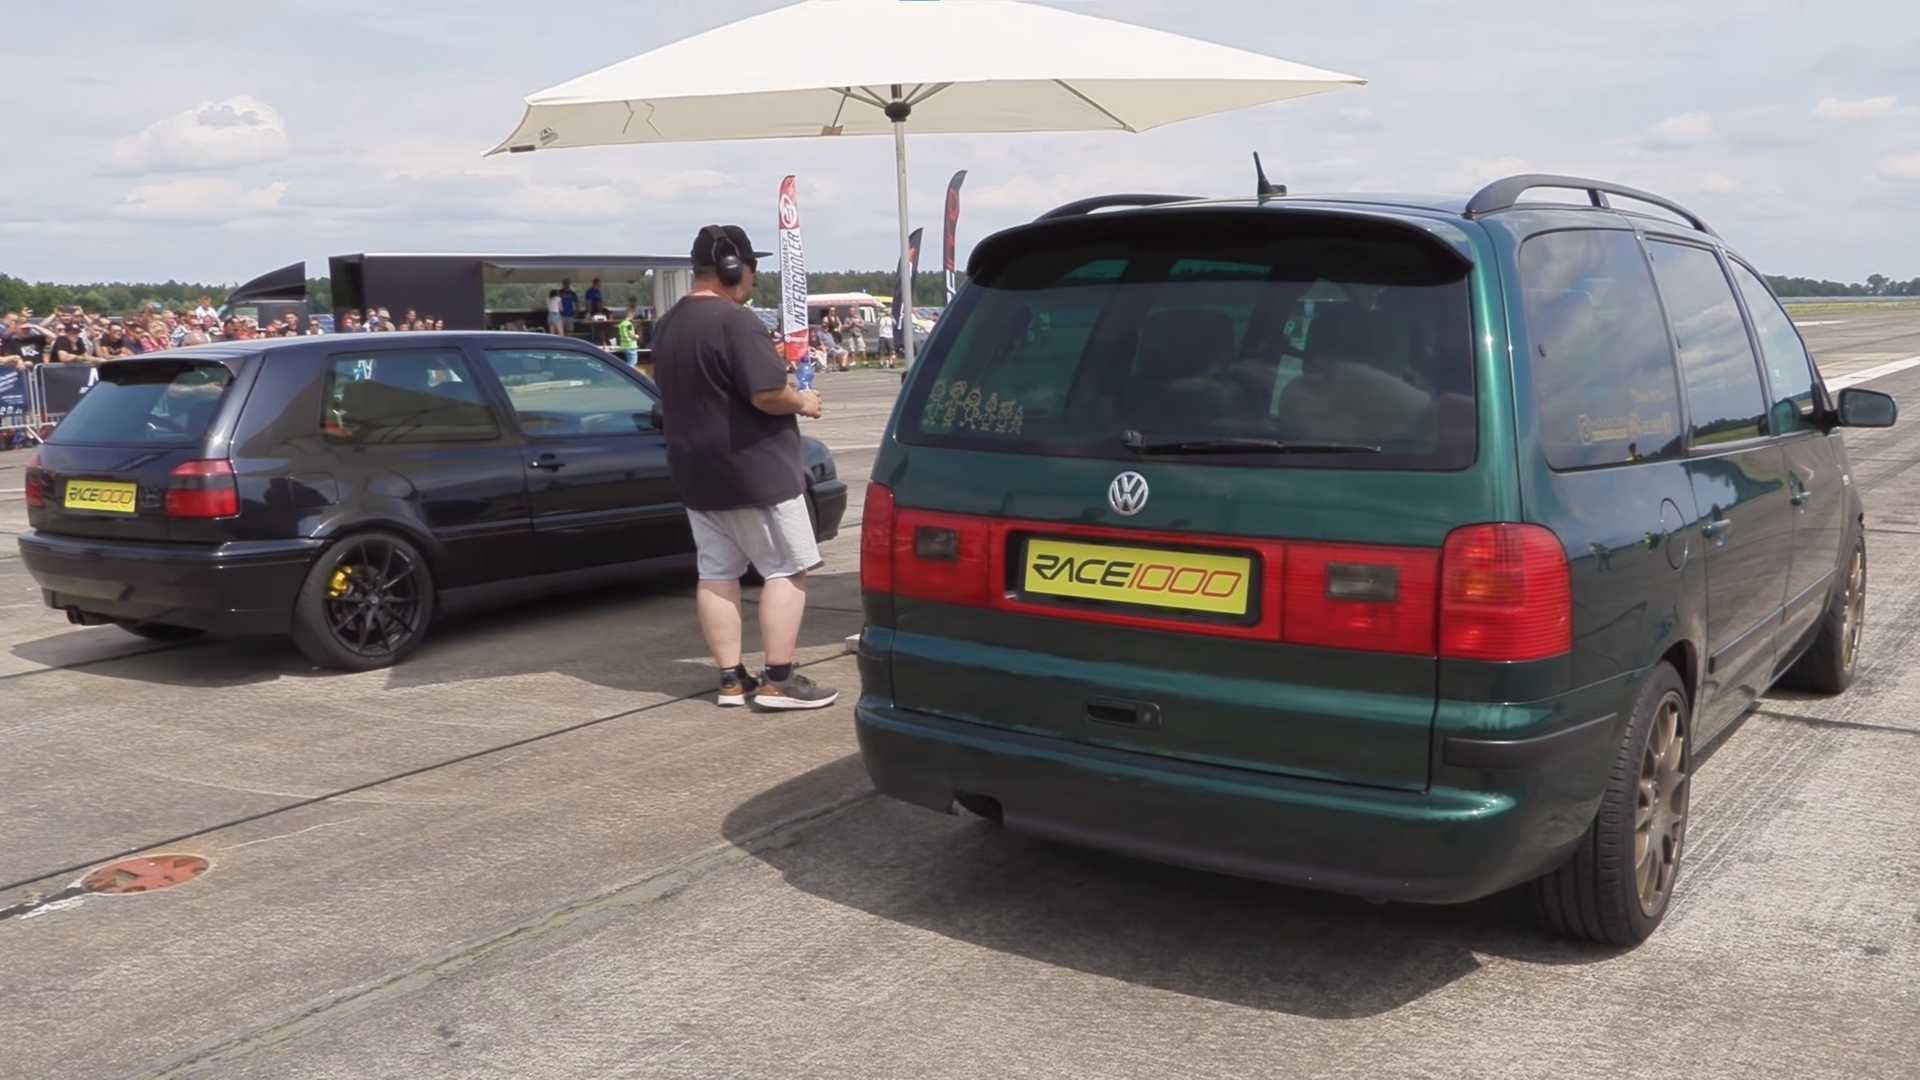 Volkswagen Golf III vs. VW Sharan